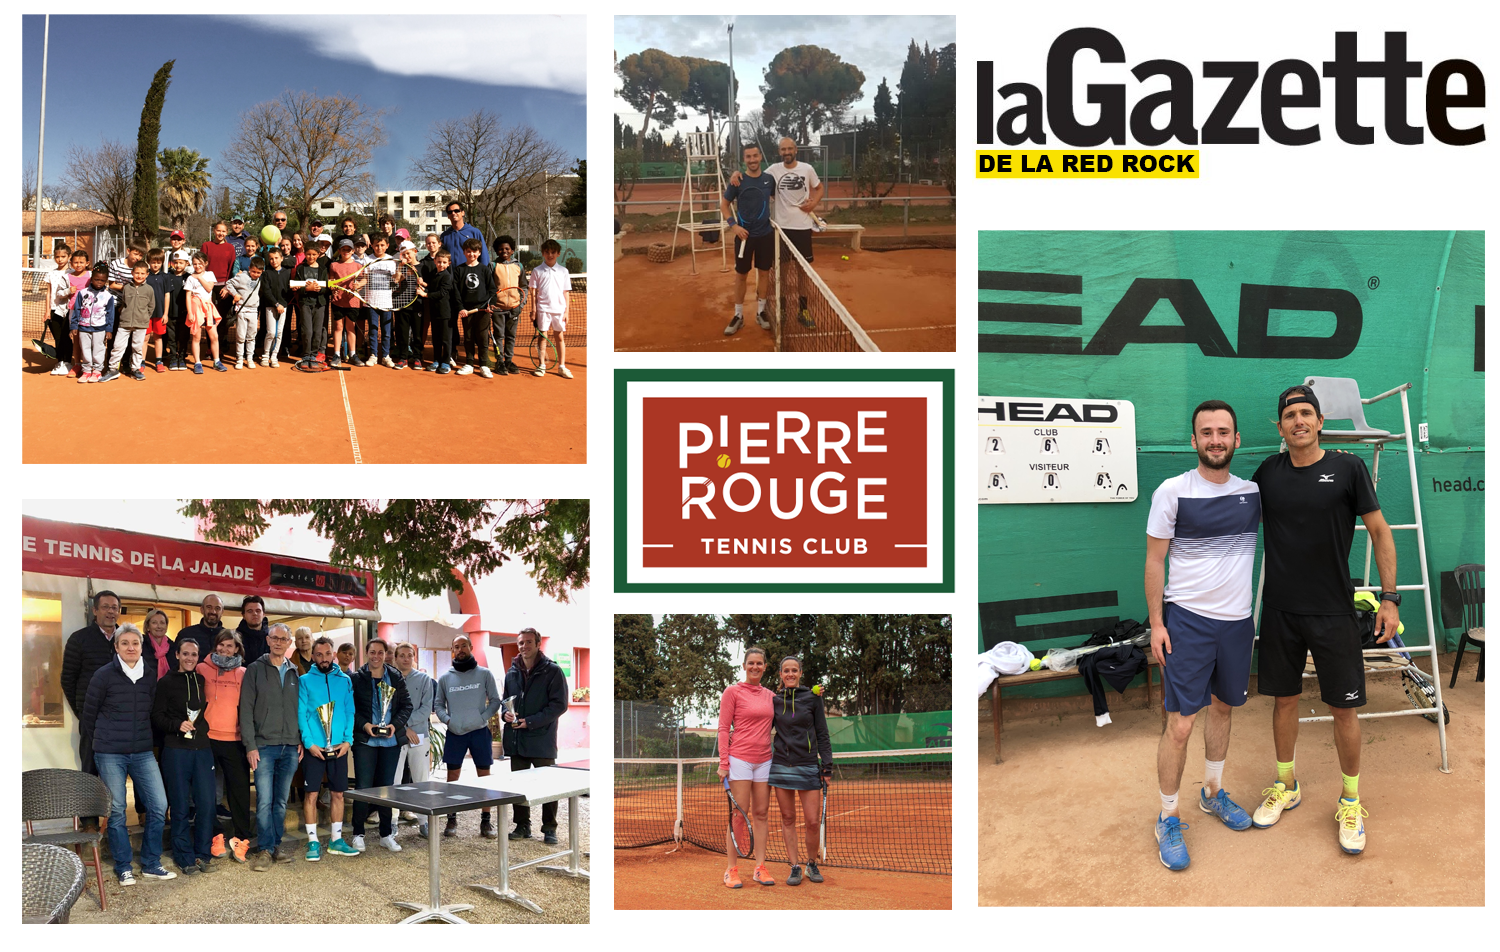 Tennis Club Pierre Rouge Montpellier - Gazette Red Rcok #17